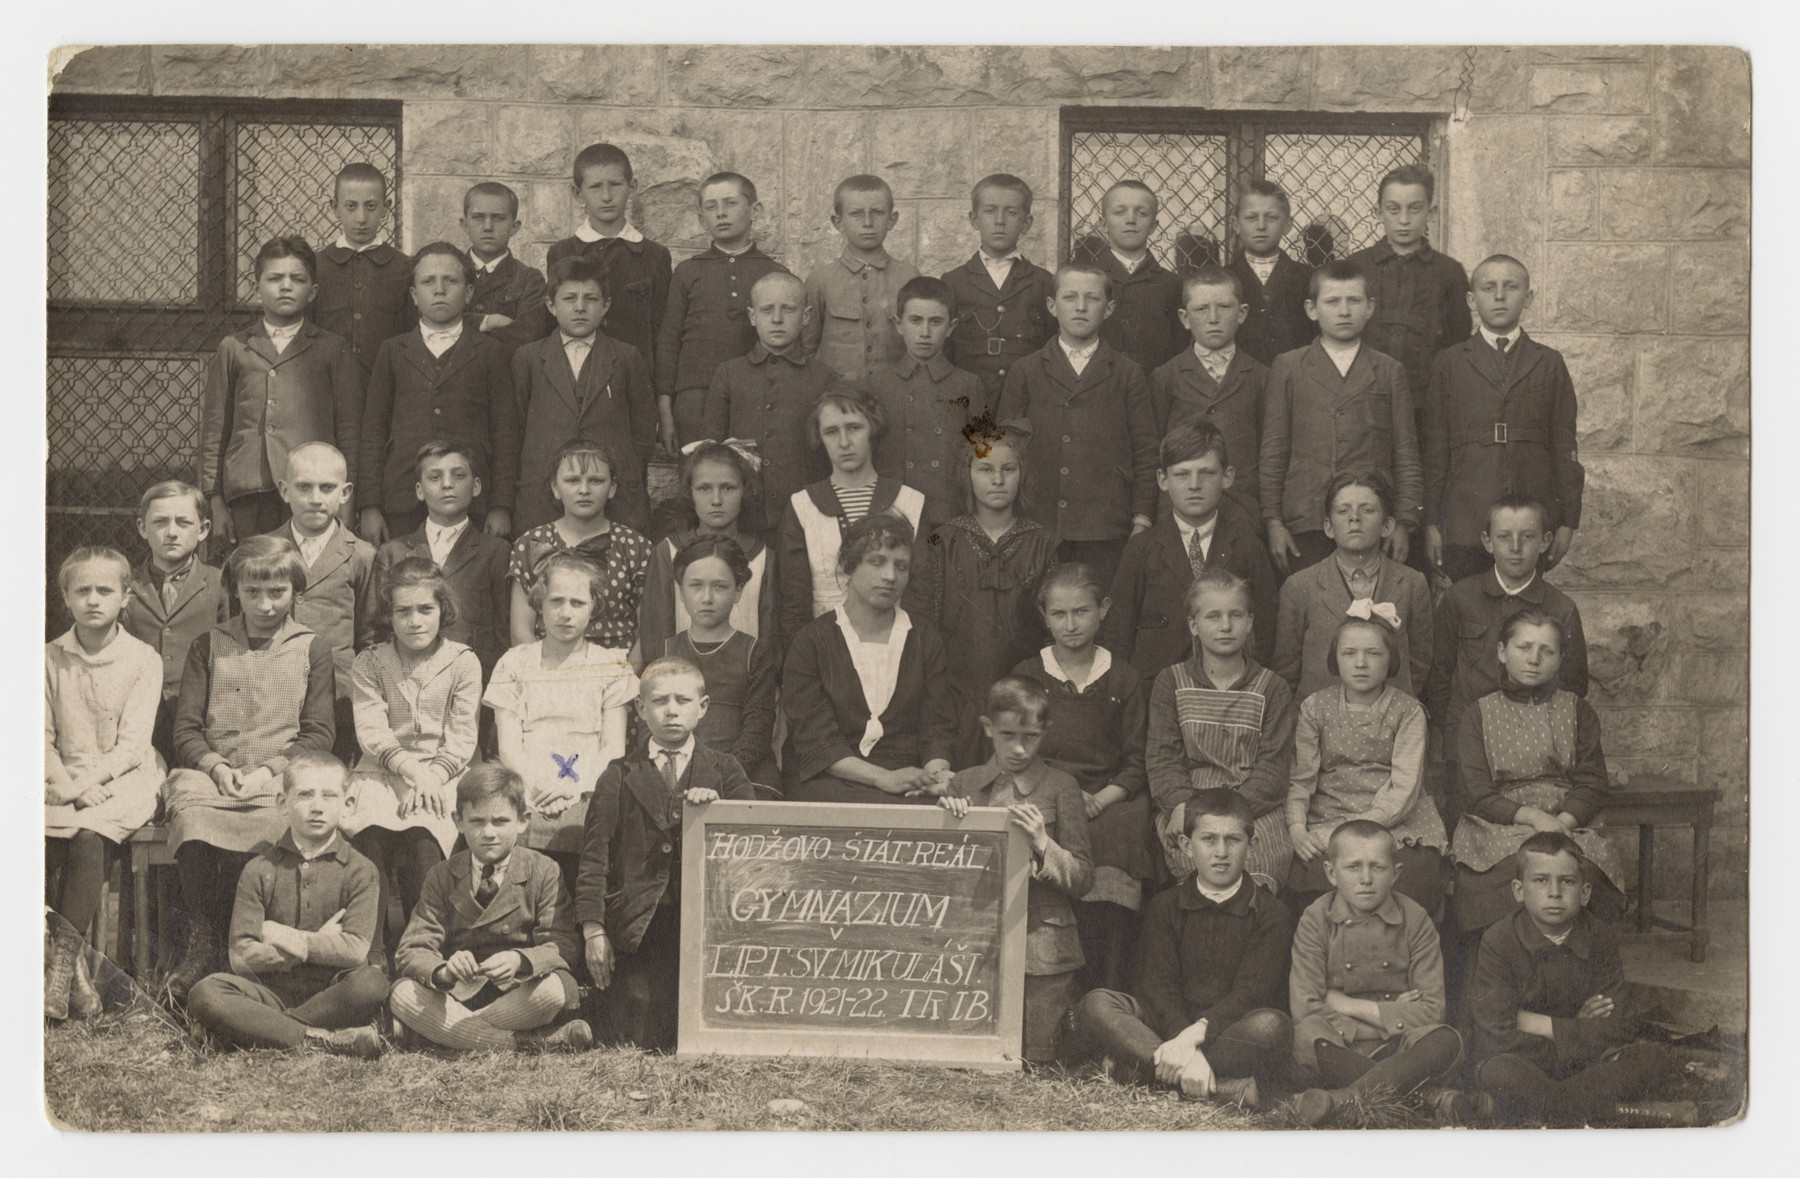 Group portrait of students at the public school in Liptovsky Mikulas.  Hedwig Schwalb is pictured seated fourth from the left.